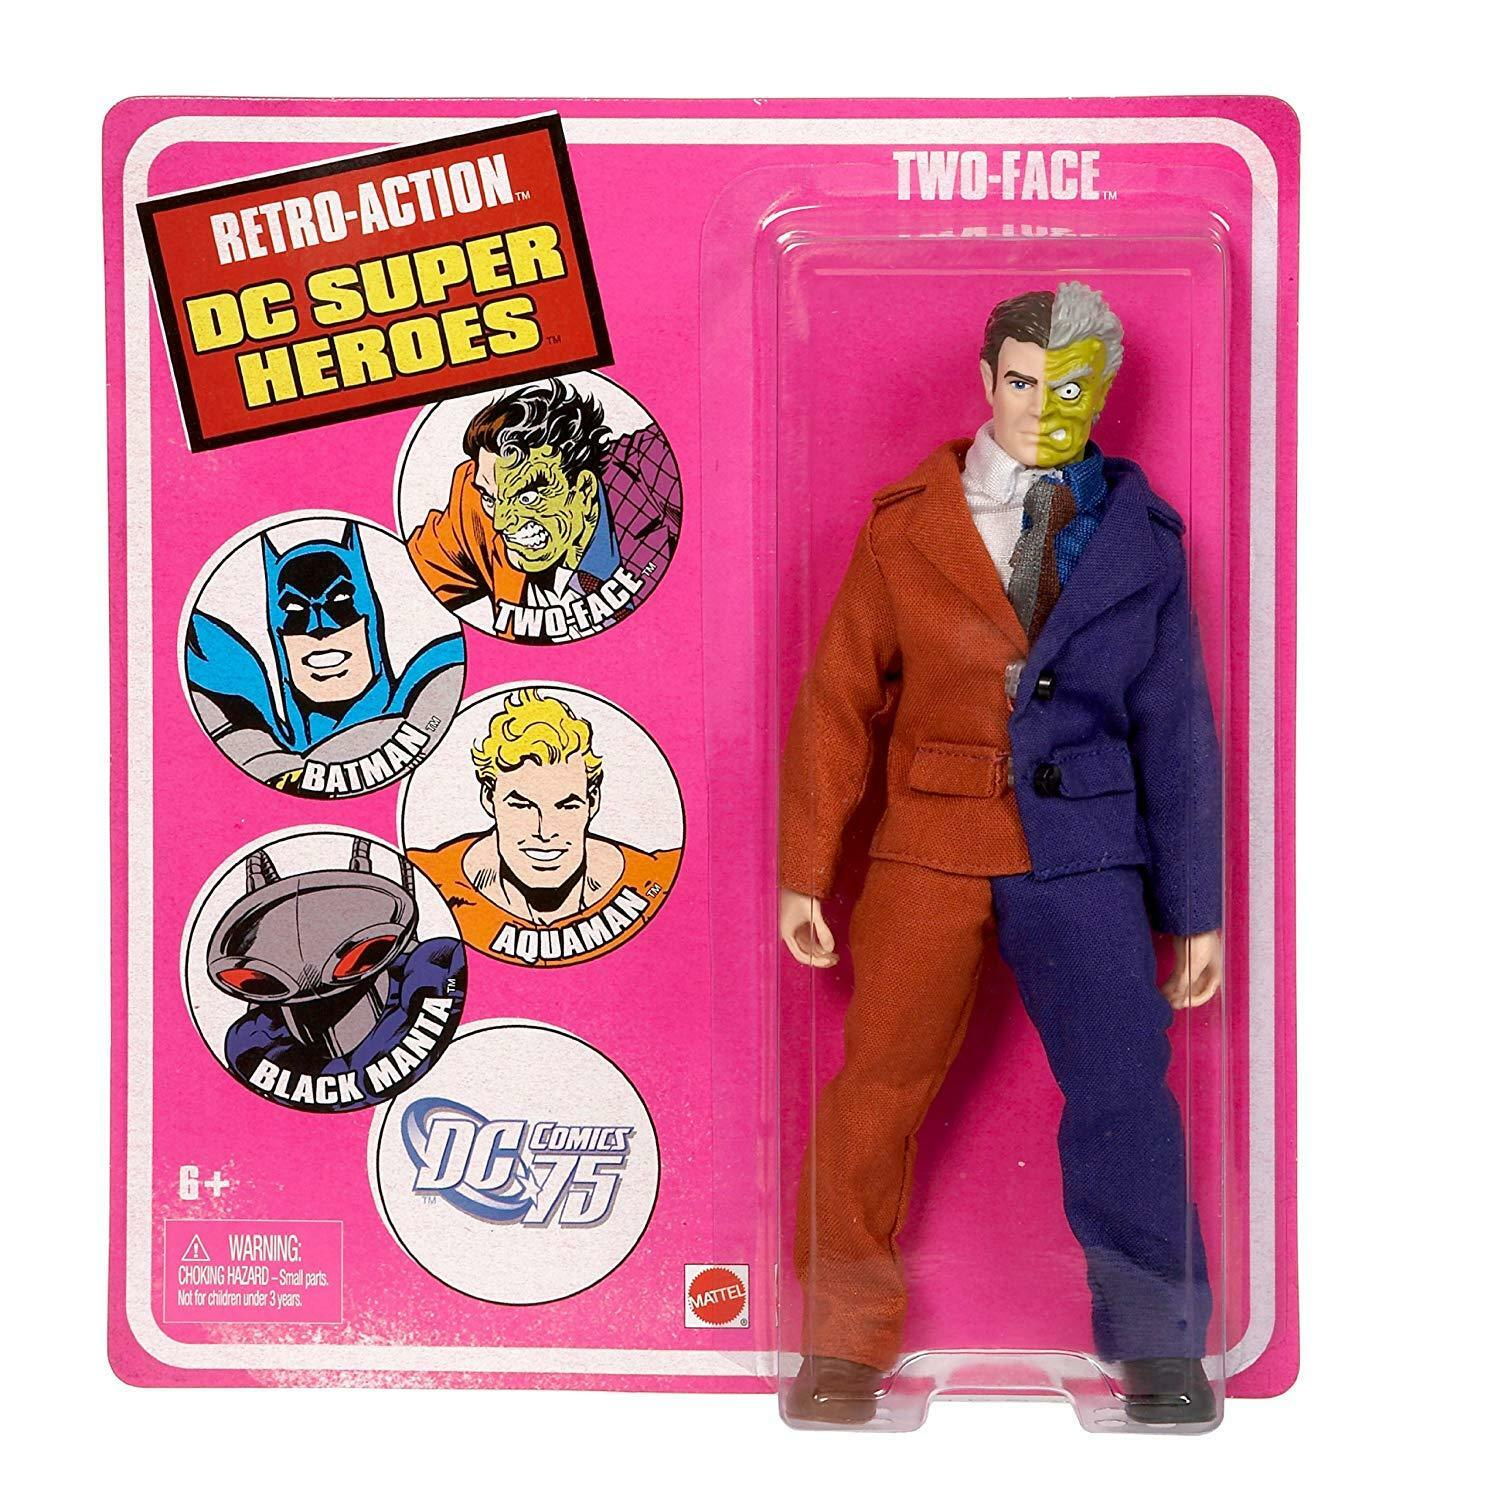 Two-Face Retro Action DC Super Heroes Action Figure by Mattel NIB 2010